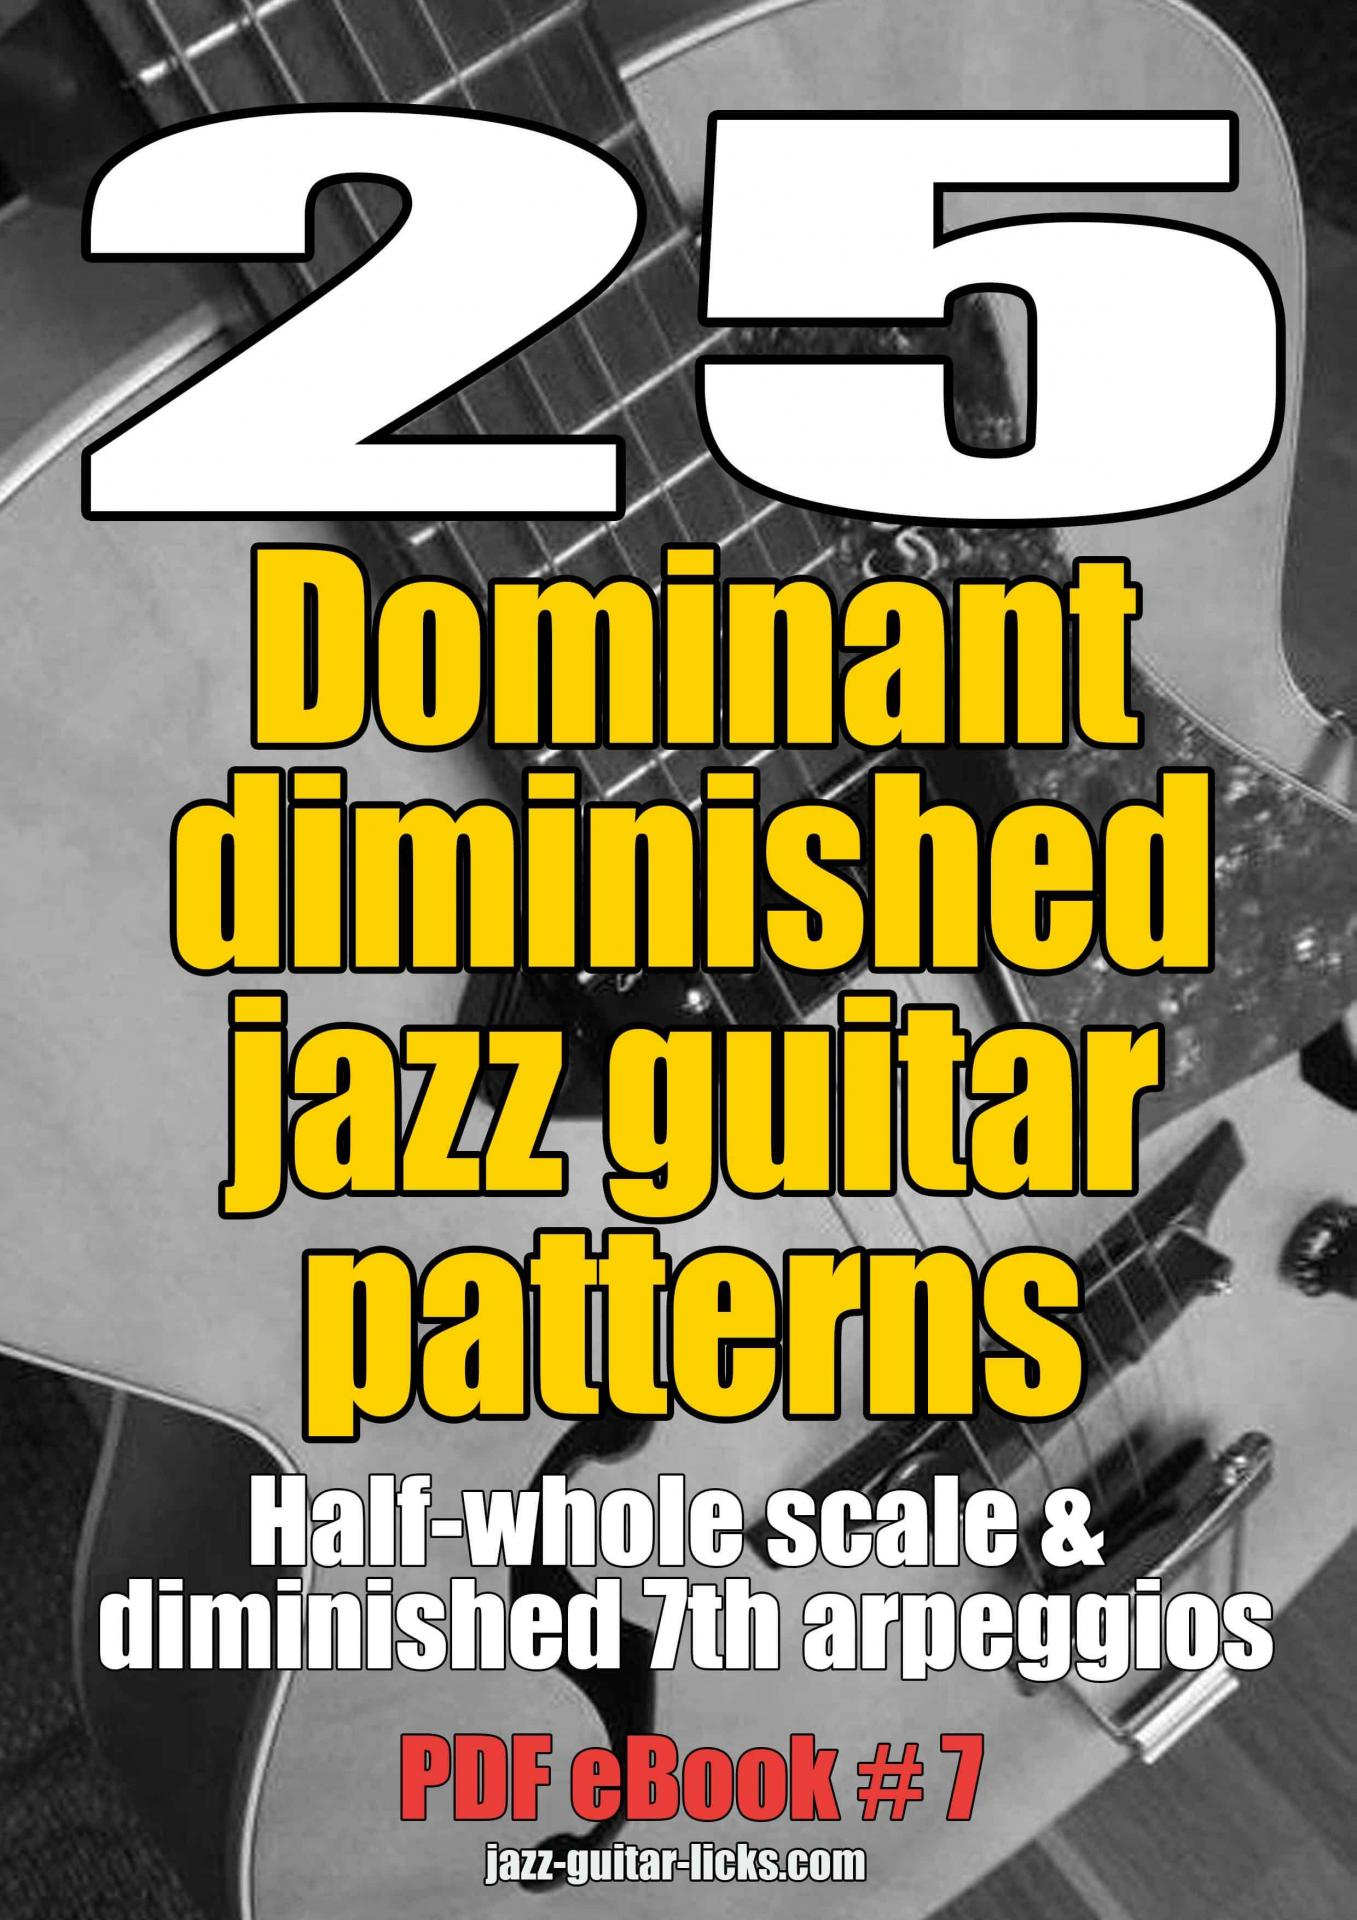 25 dominant diminished jazz guitar patterns ebook pdf